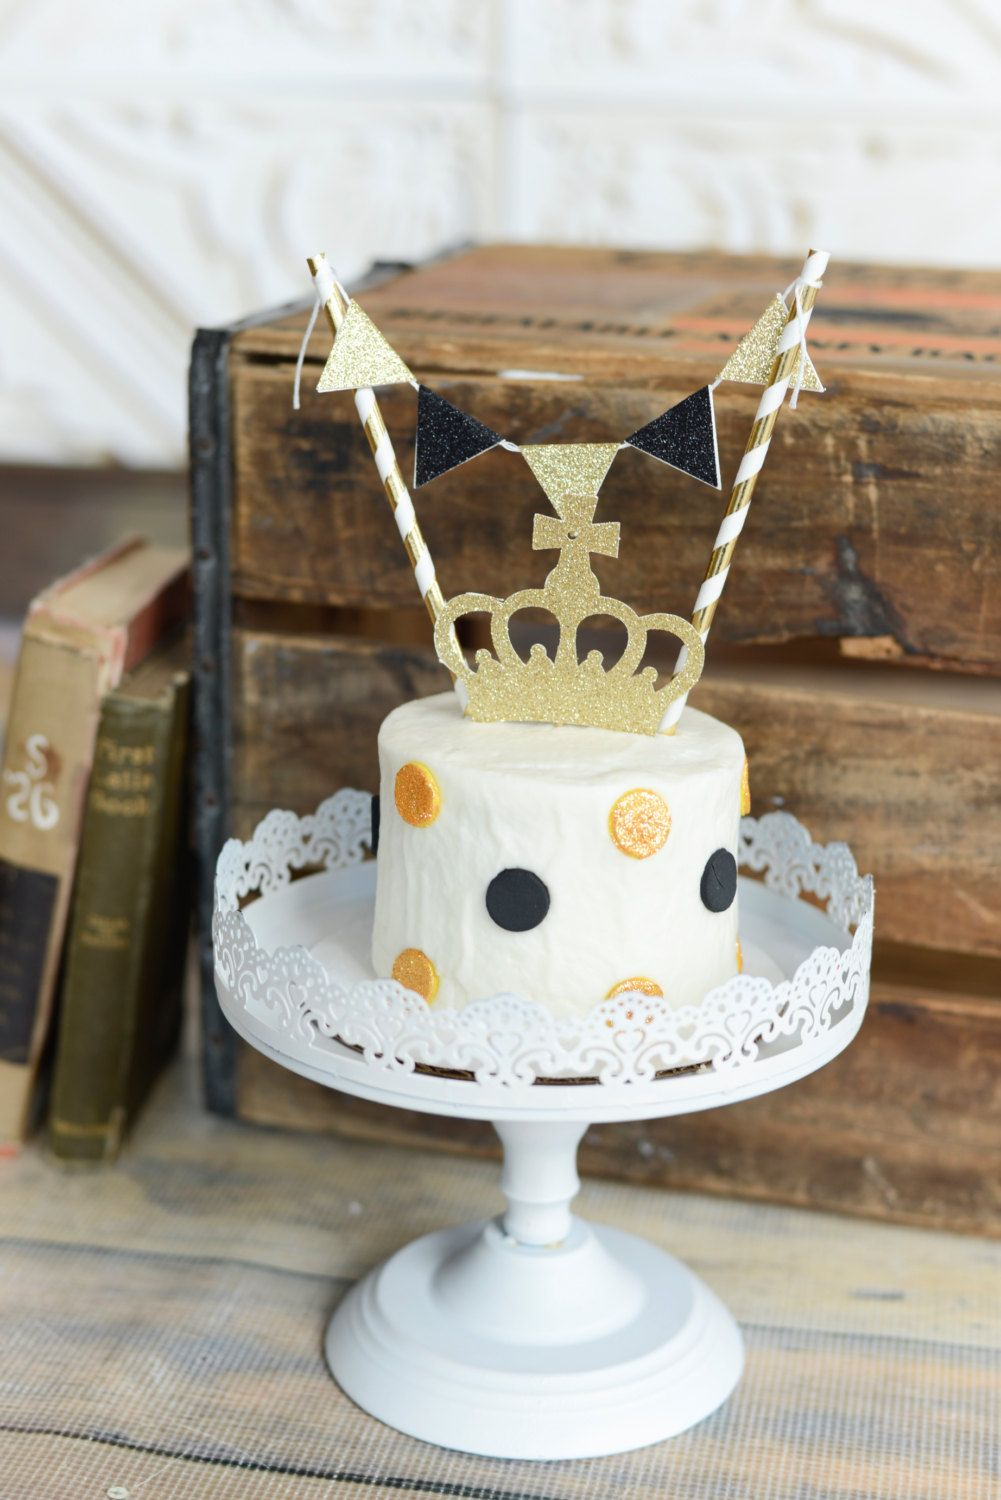 Crown Cake Topper, little prince cake topper, prince cake